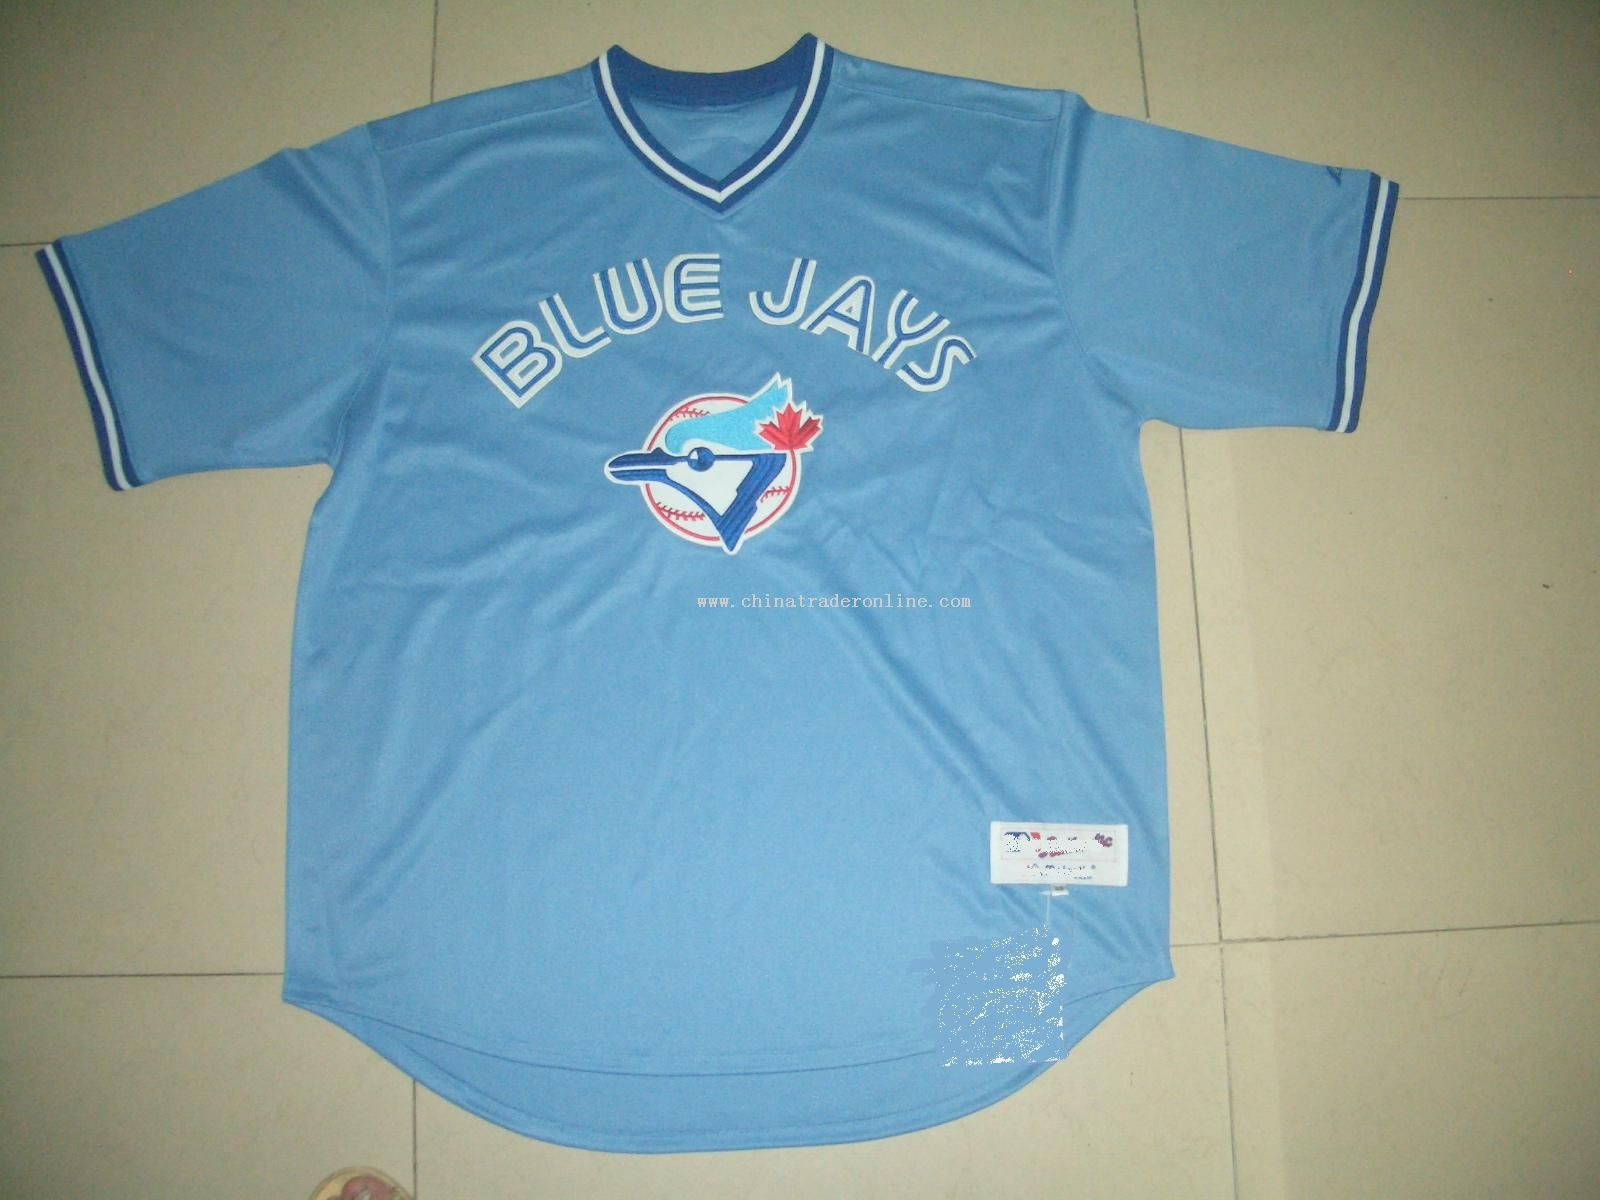 blue jays baseball jerseys